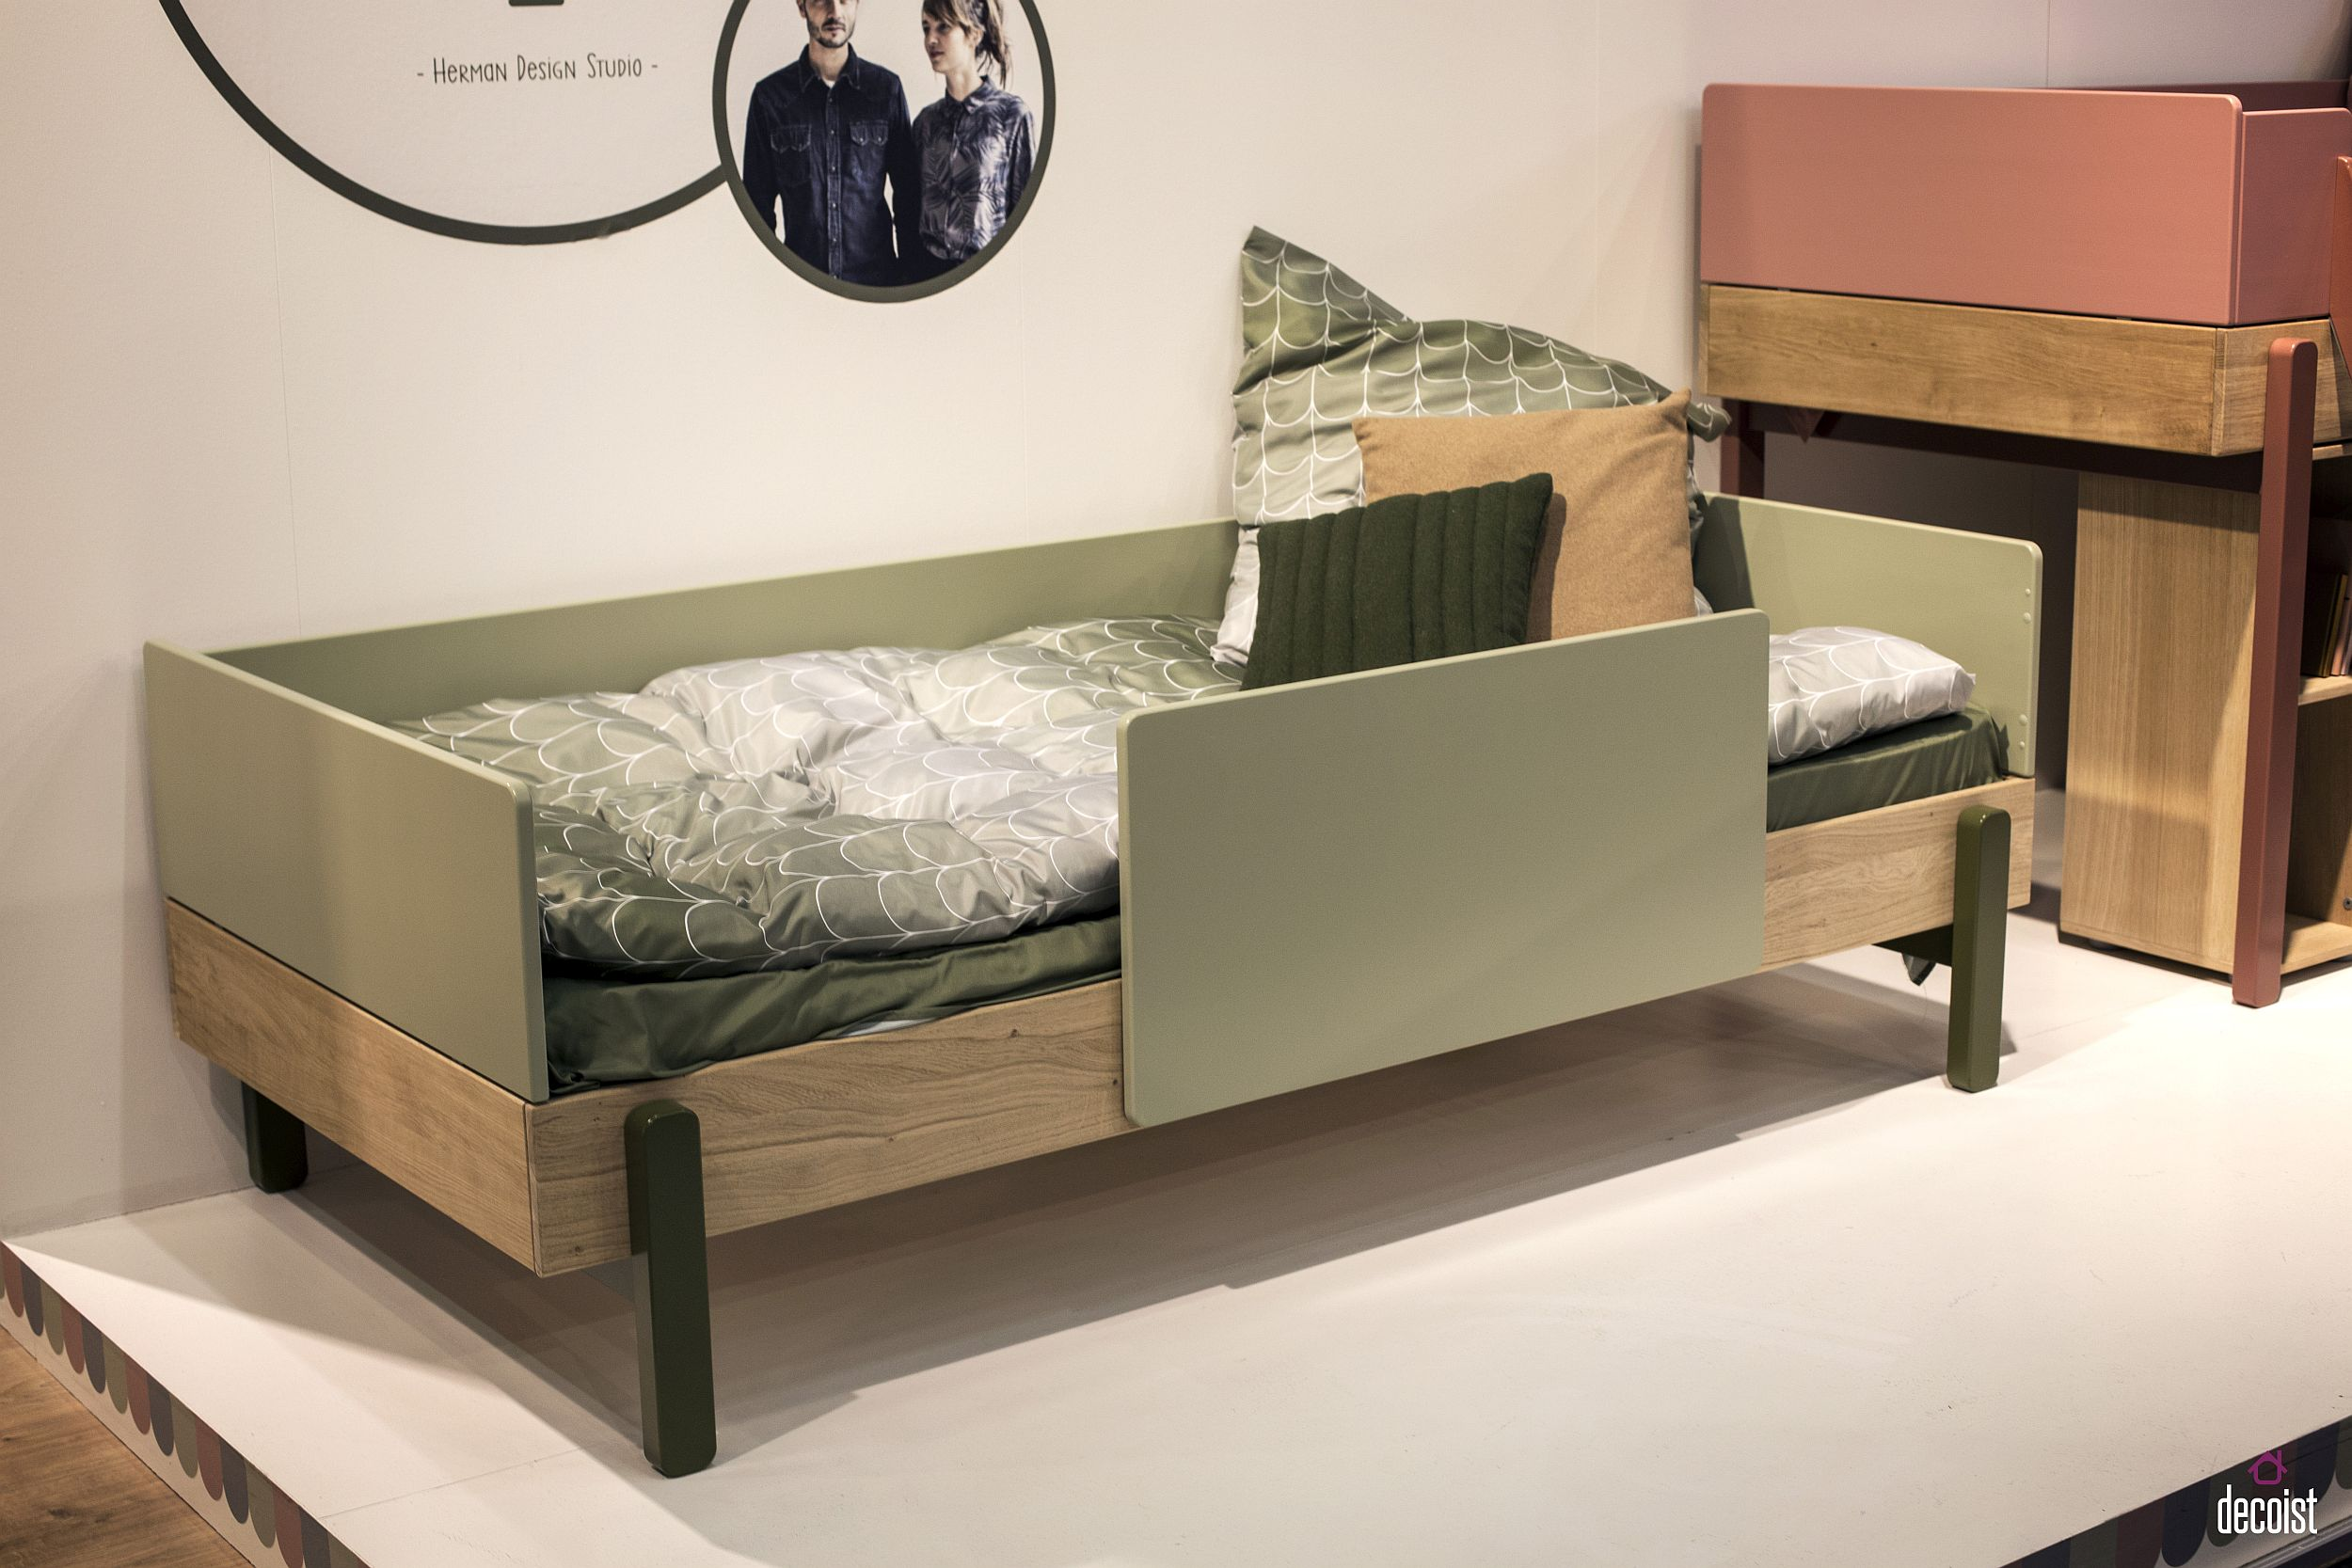 Flexa Popsicle Collection of kids' furniture and bedroom decor